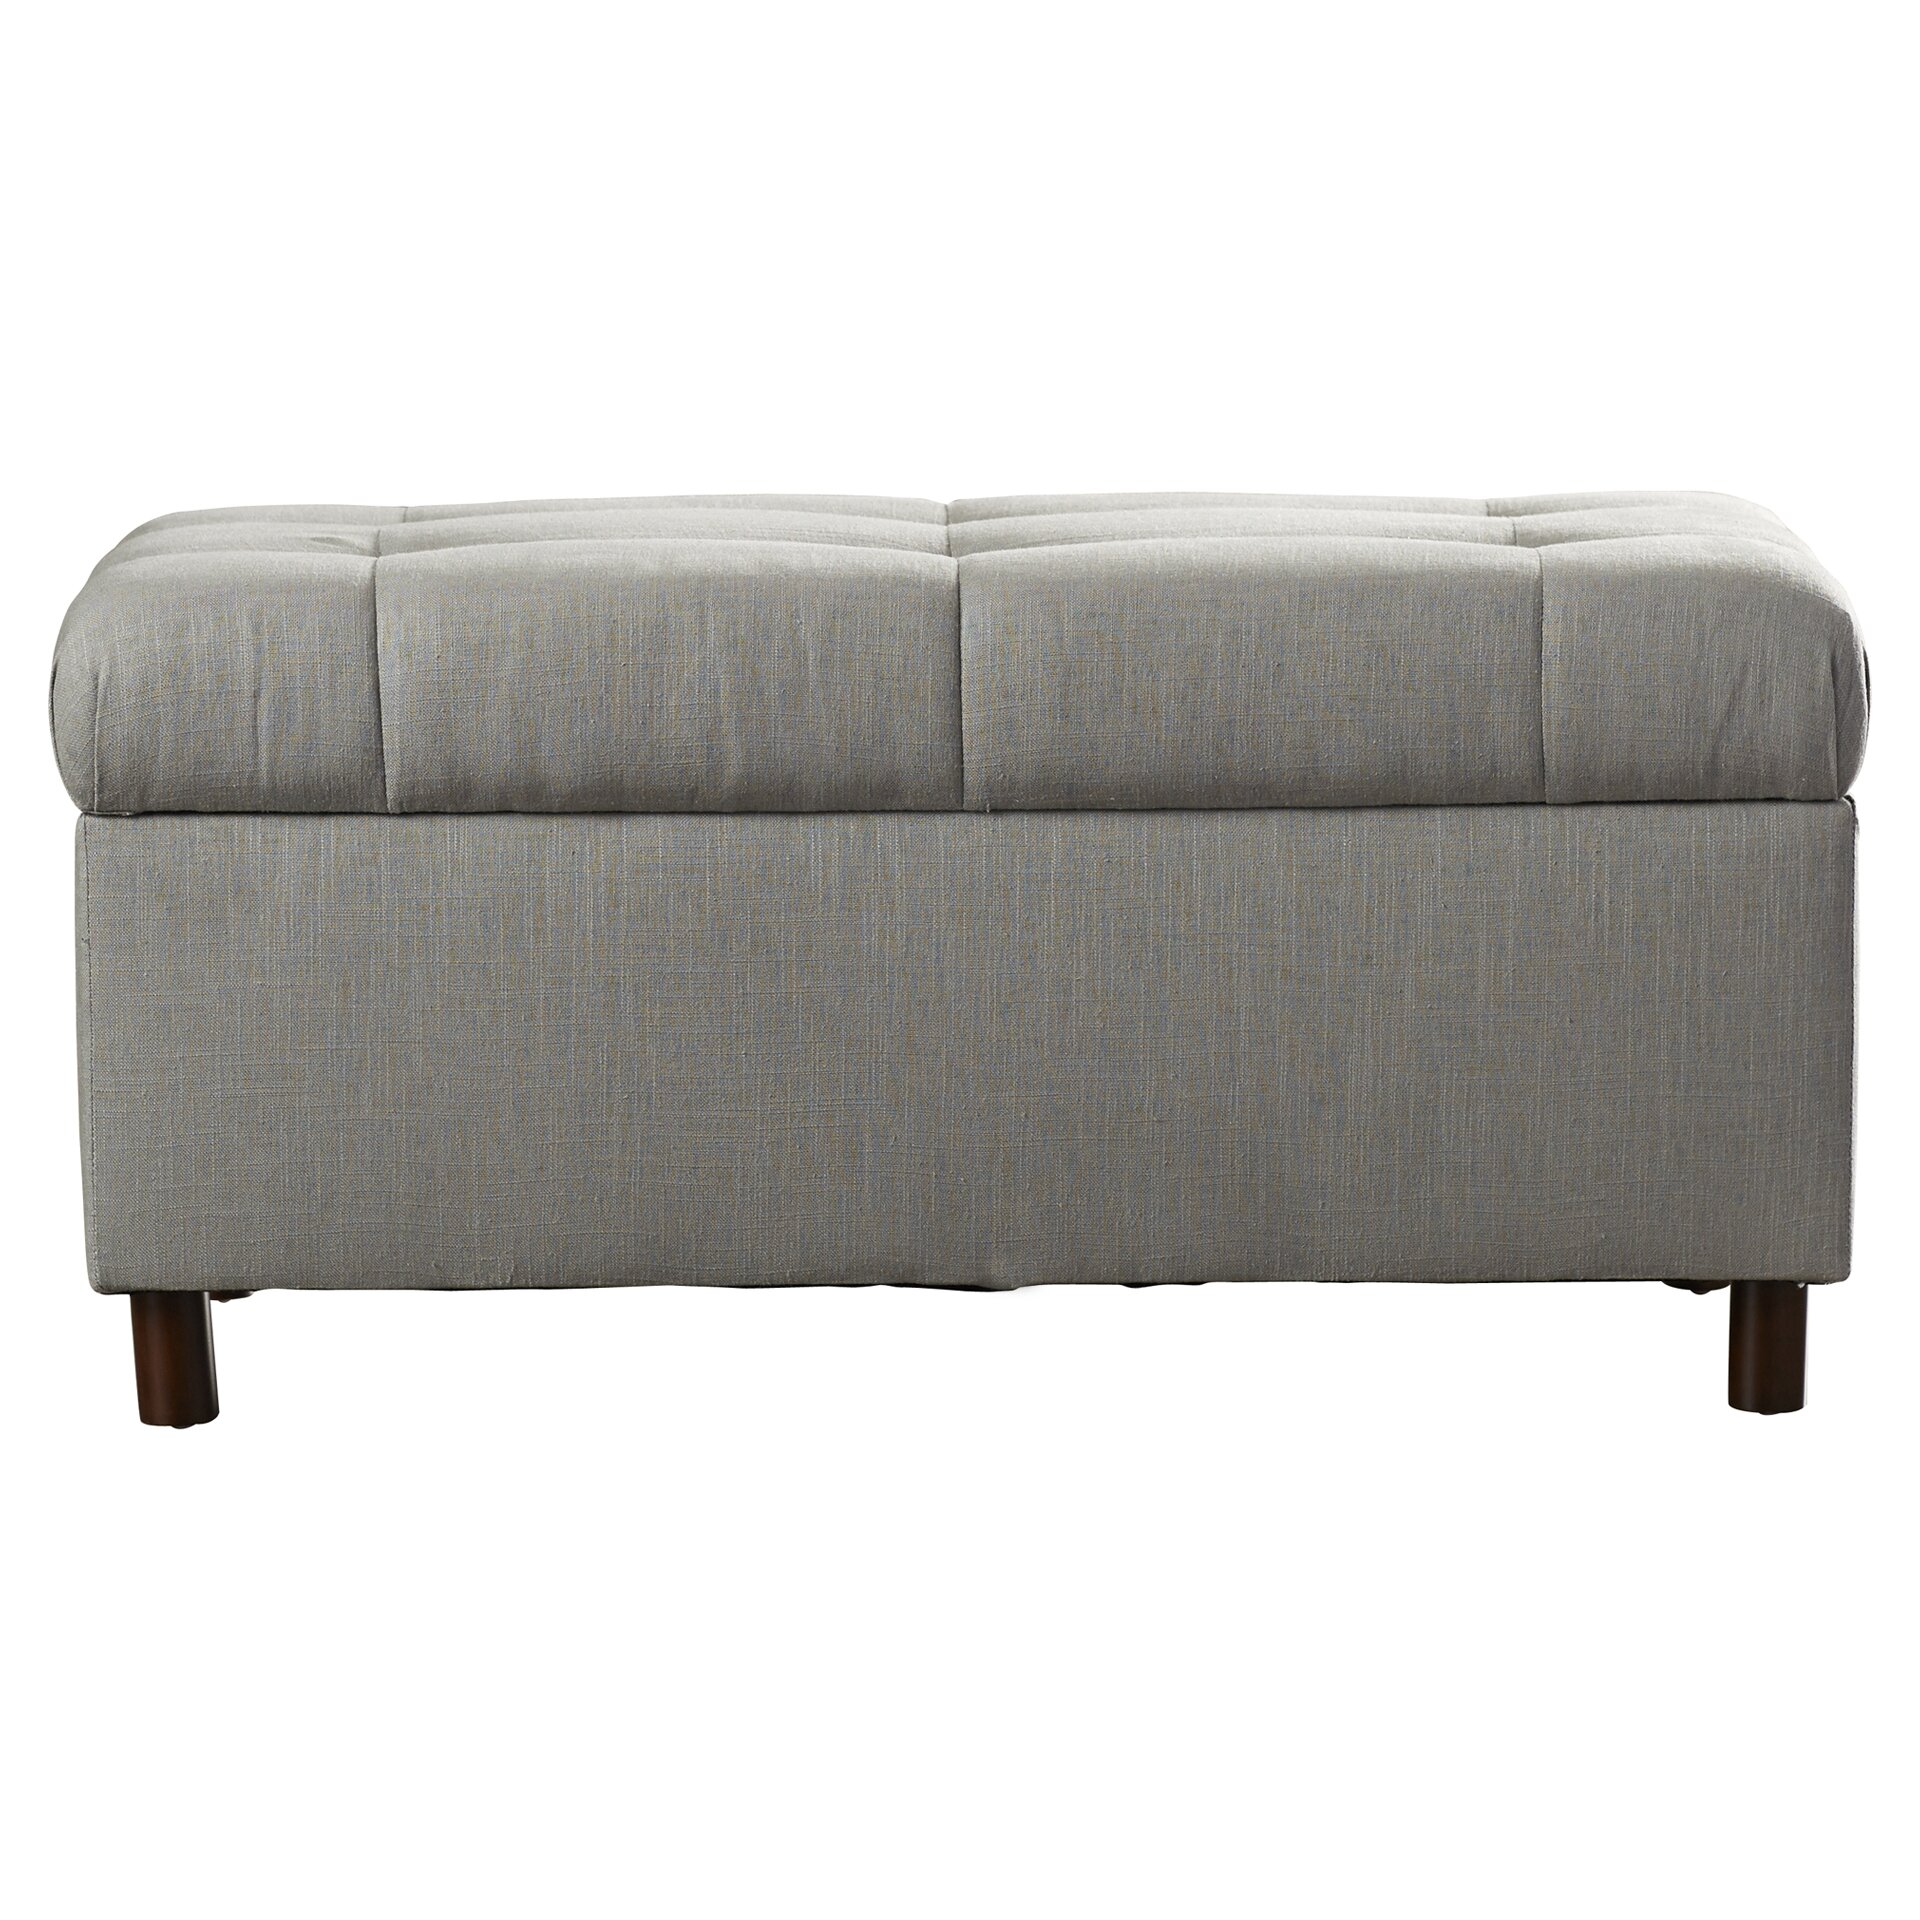 Baxton studio brighton button tufted upholstered modern bedroom bench - Fitchburg Tufted Upholstered